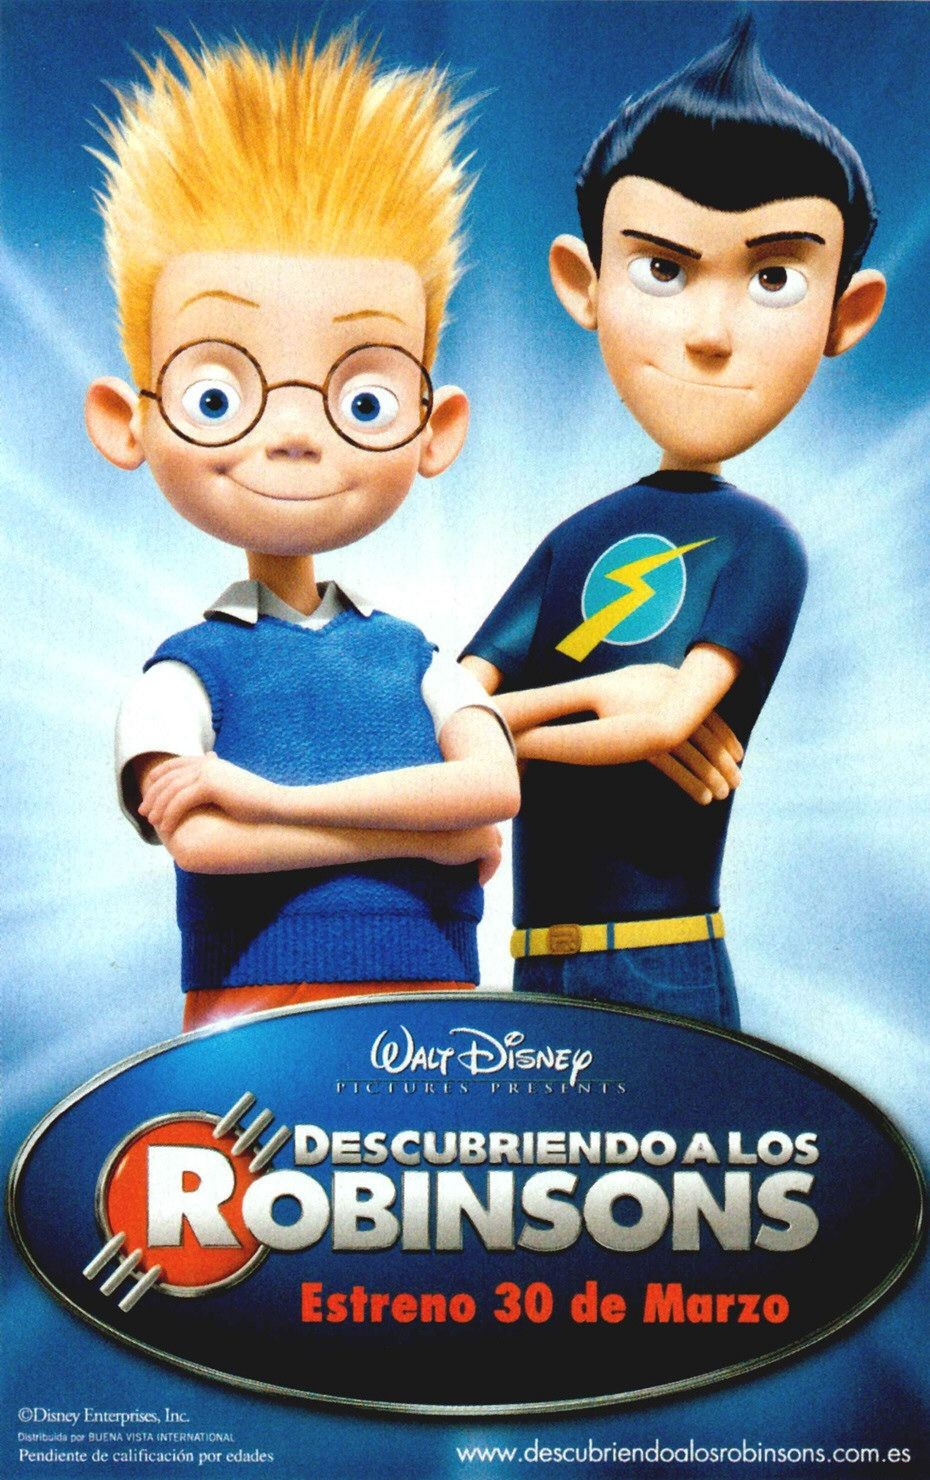 meet the robinsons 27 x 40 poster